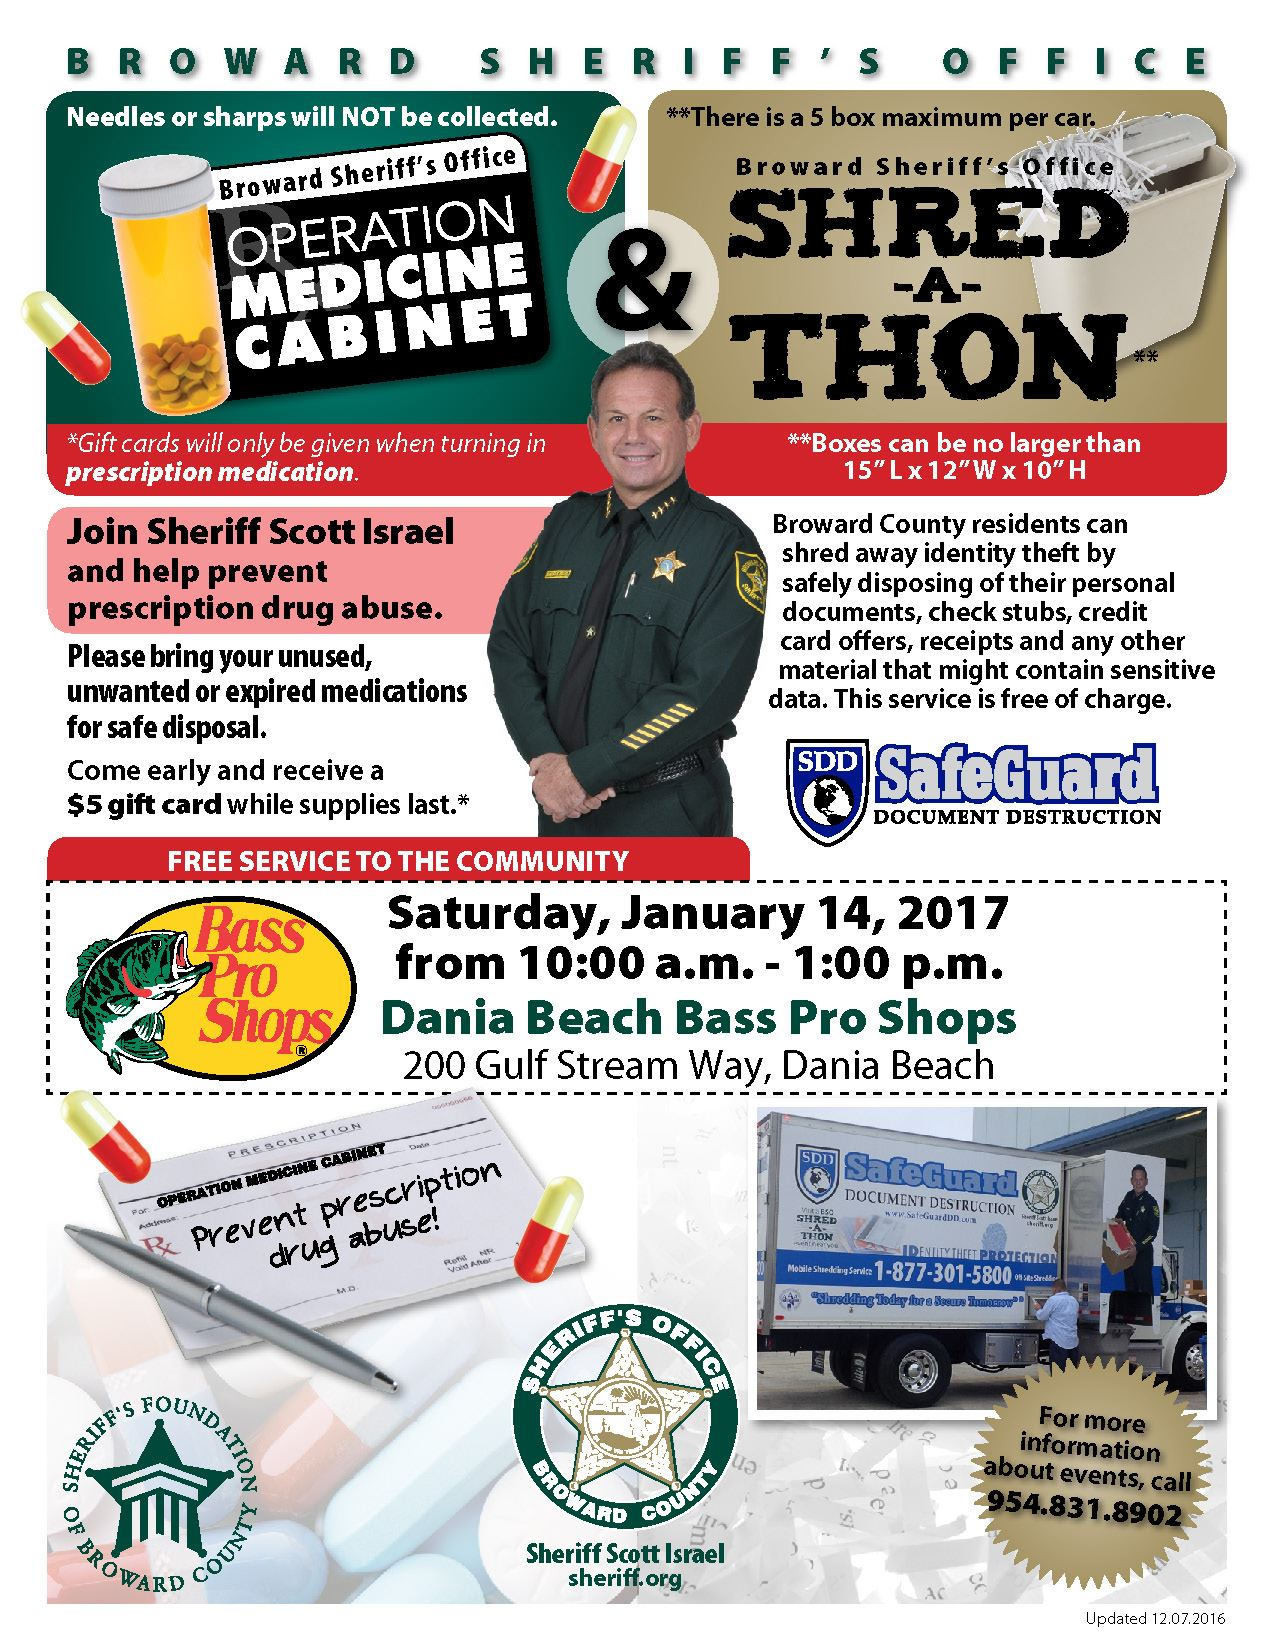 Jan 14 Shred-a-Thon & Operation Medicine Cabinet